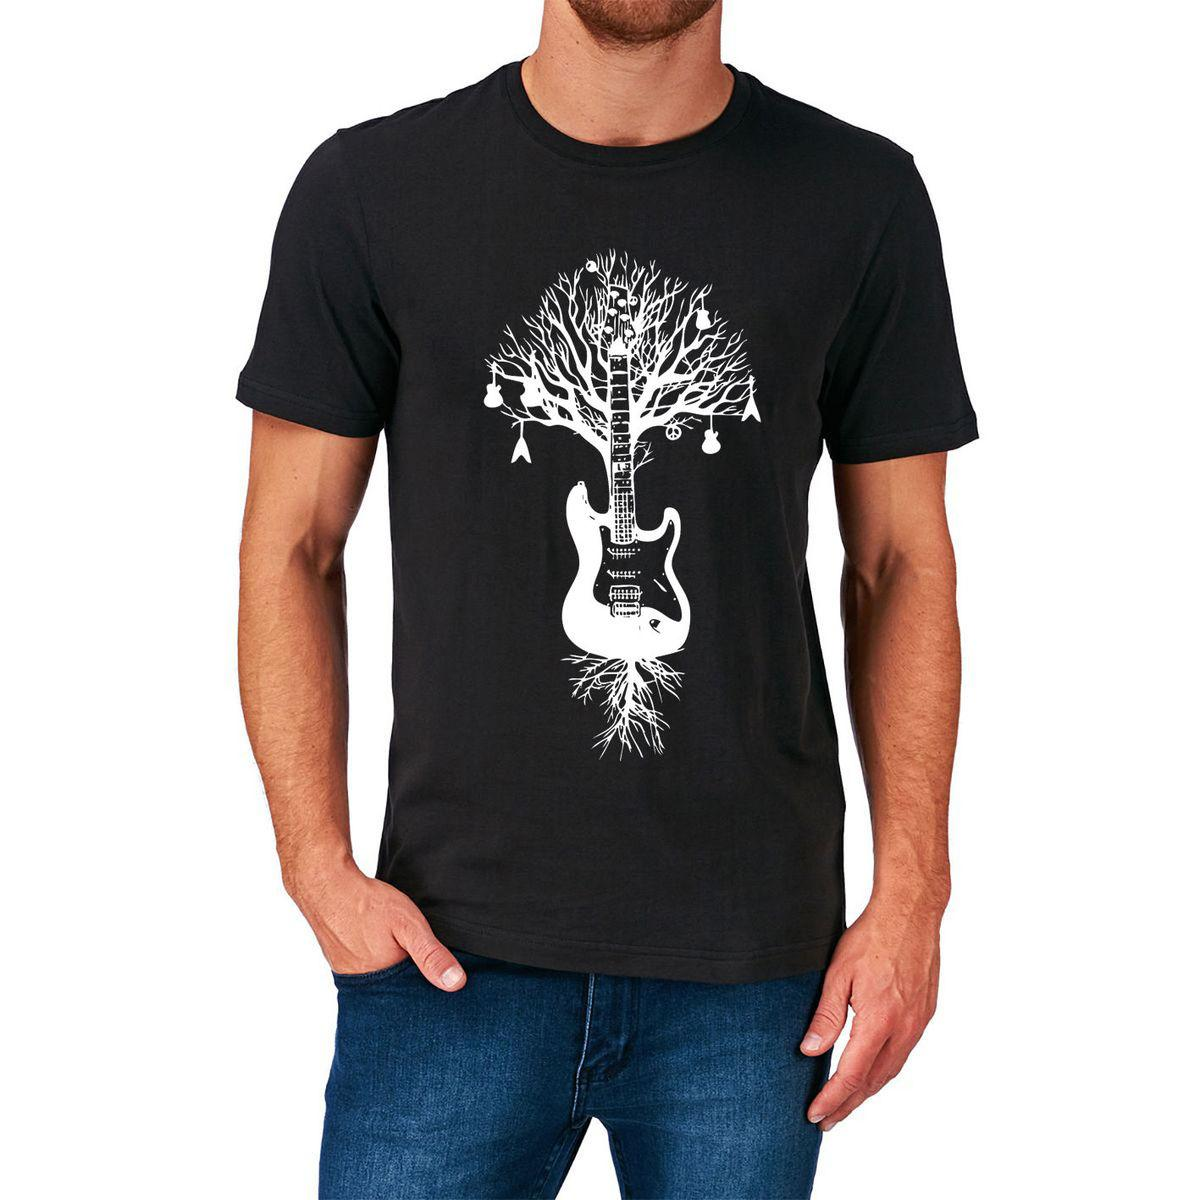 GUITAR TREE T SHIRT ELECTRIC ACOUSTIC STRINGS PLECTRUM BIRTHDAY GIFT PRESENT Short Sleeve T-Shirt Funny Print Top Tee